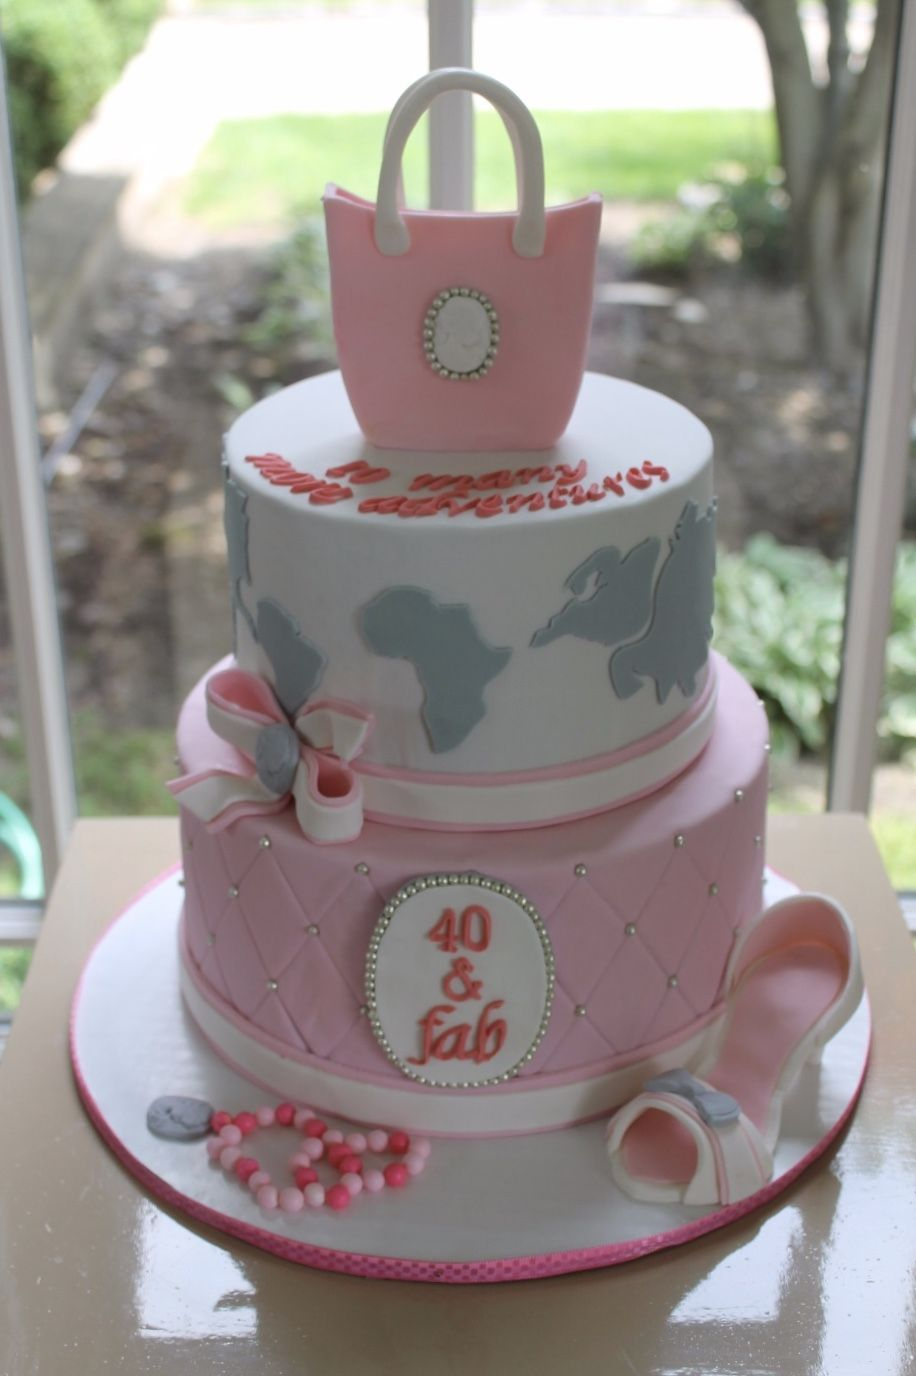 40Th Birthday Cakes For Her 40th Birthday Cake Cake For Her Cakes Pinterest 40th Birthday